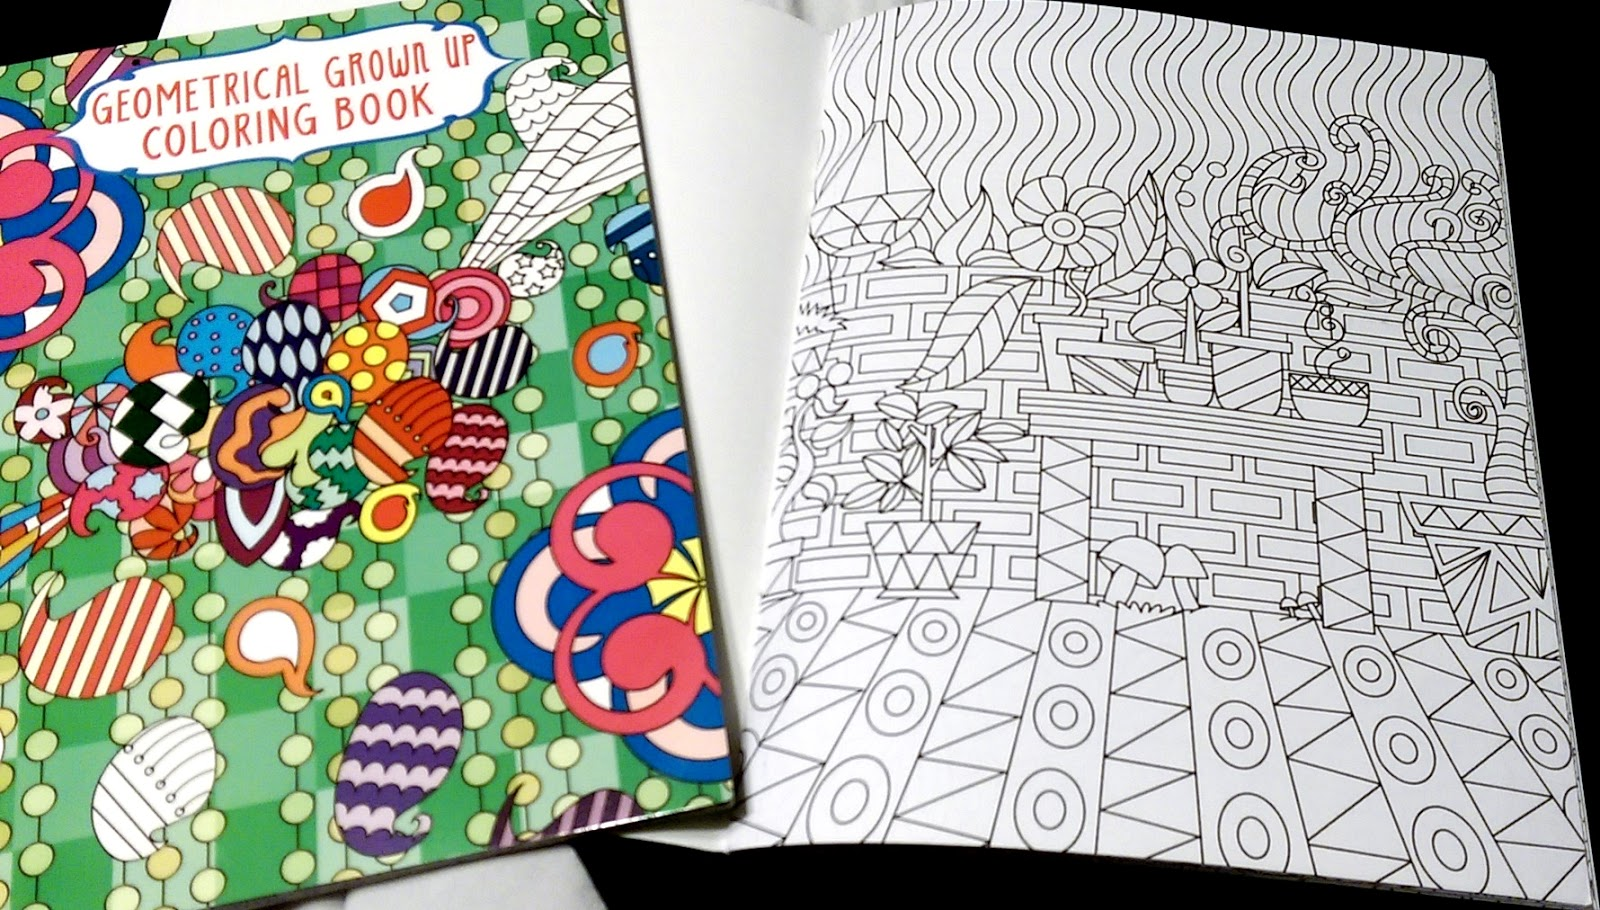 Inexpensive Geometric Grown Up Coloring Books Adult Shapes Colors Pencils Intricate Designs